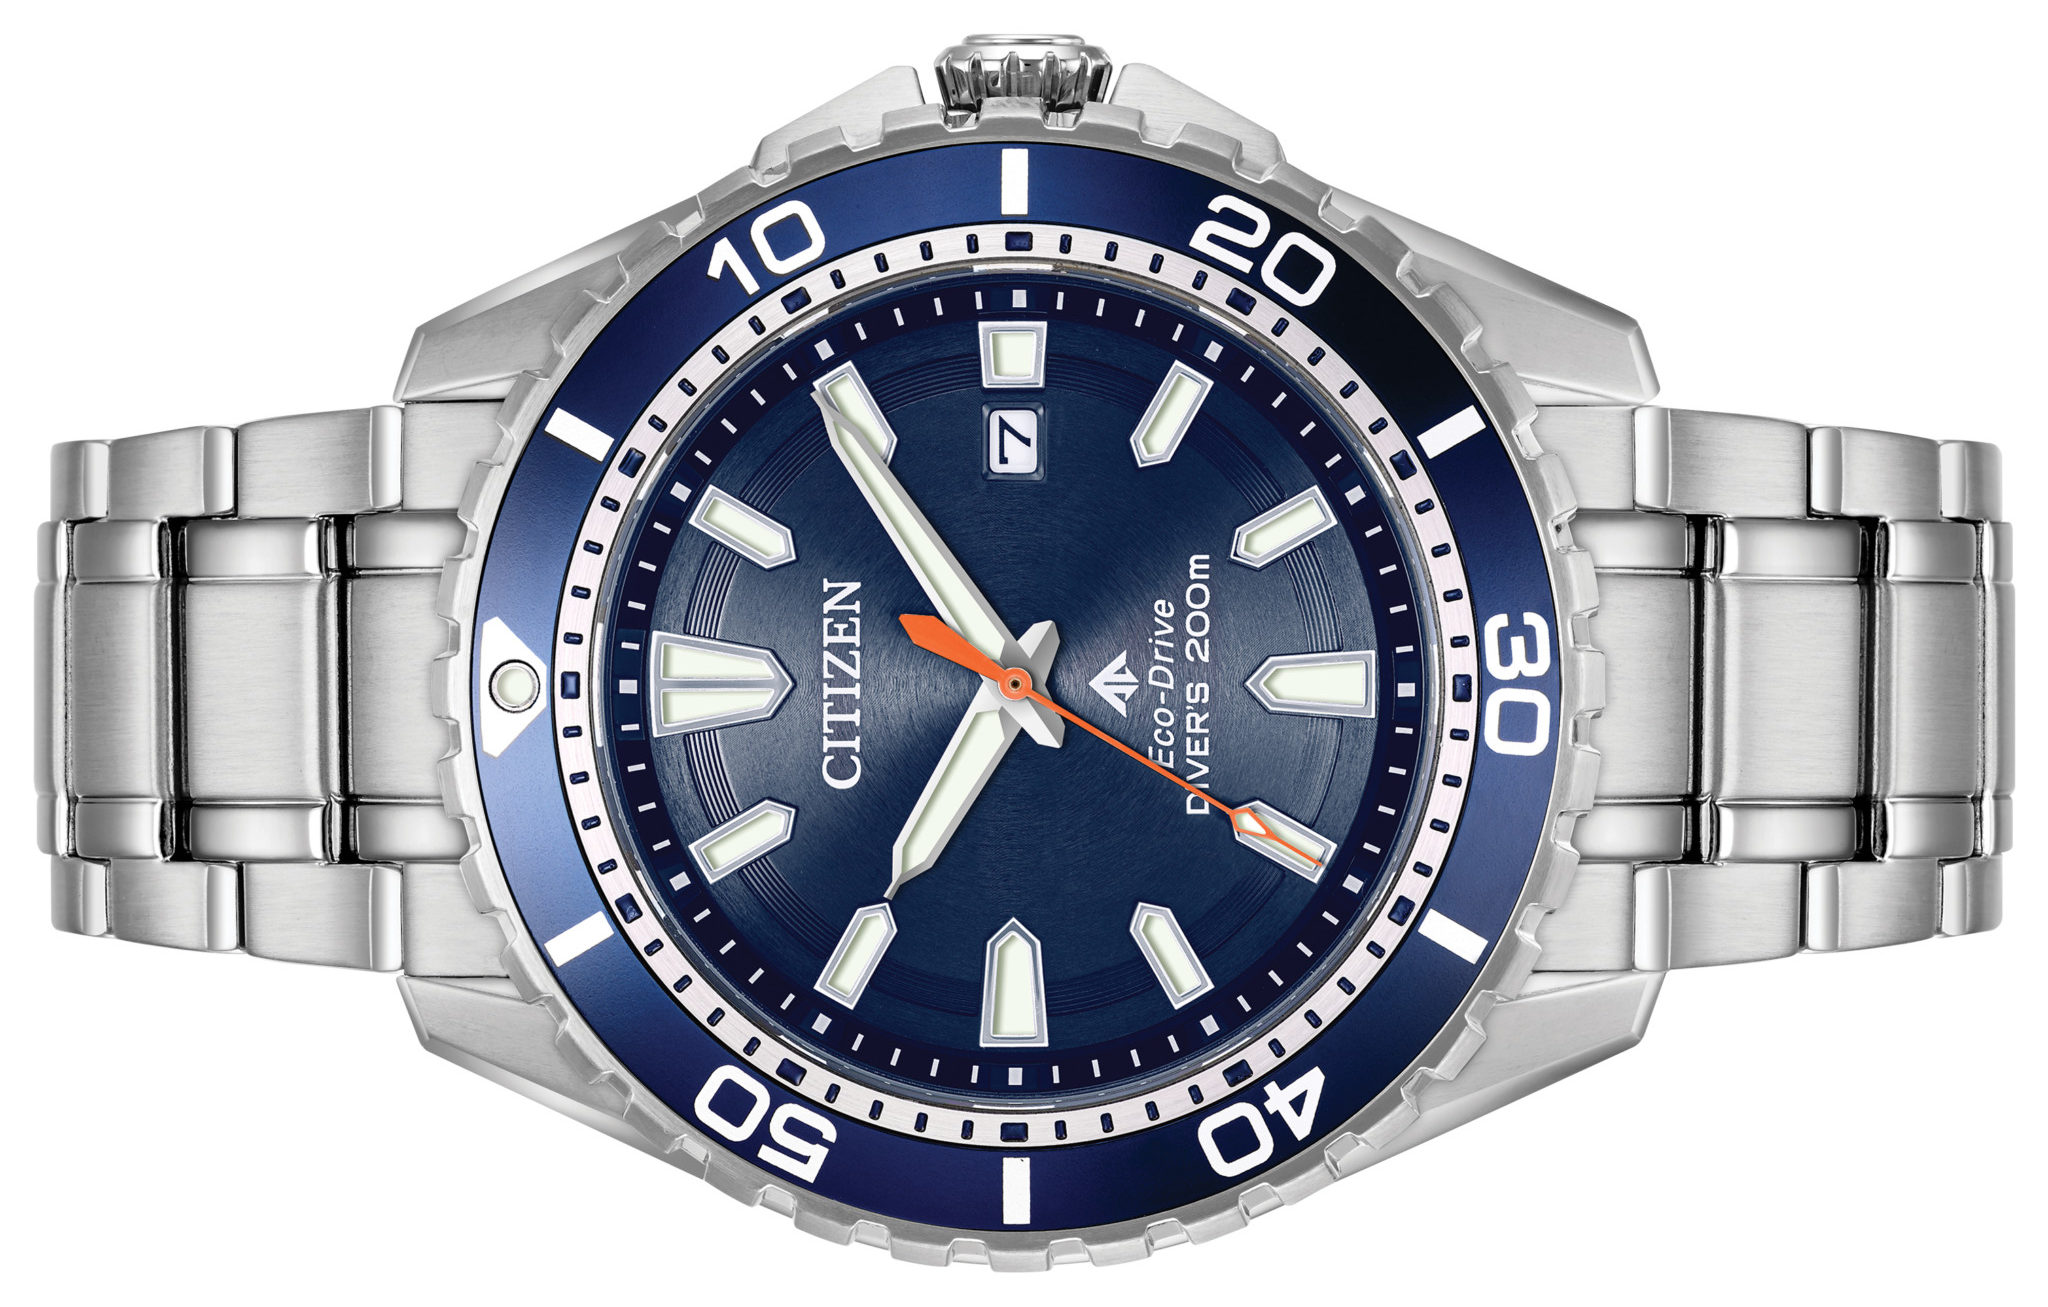 Citizen diver